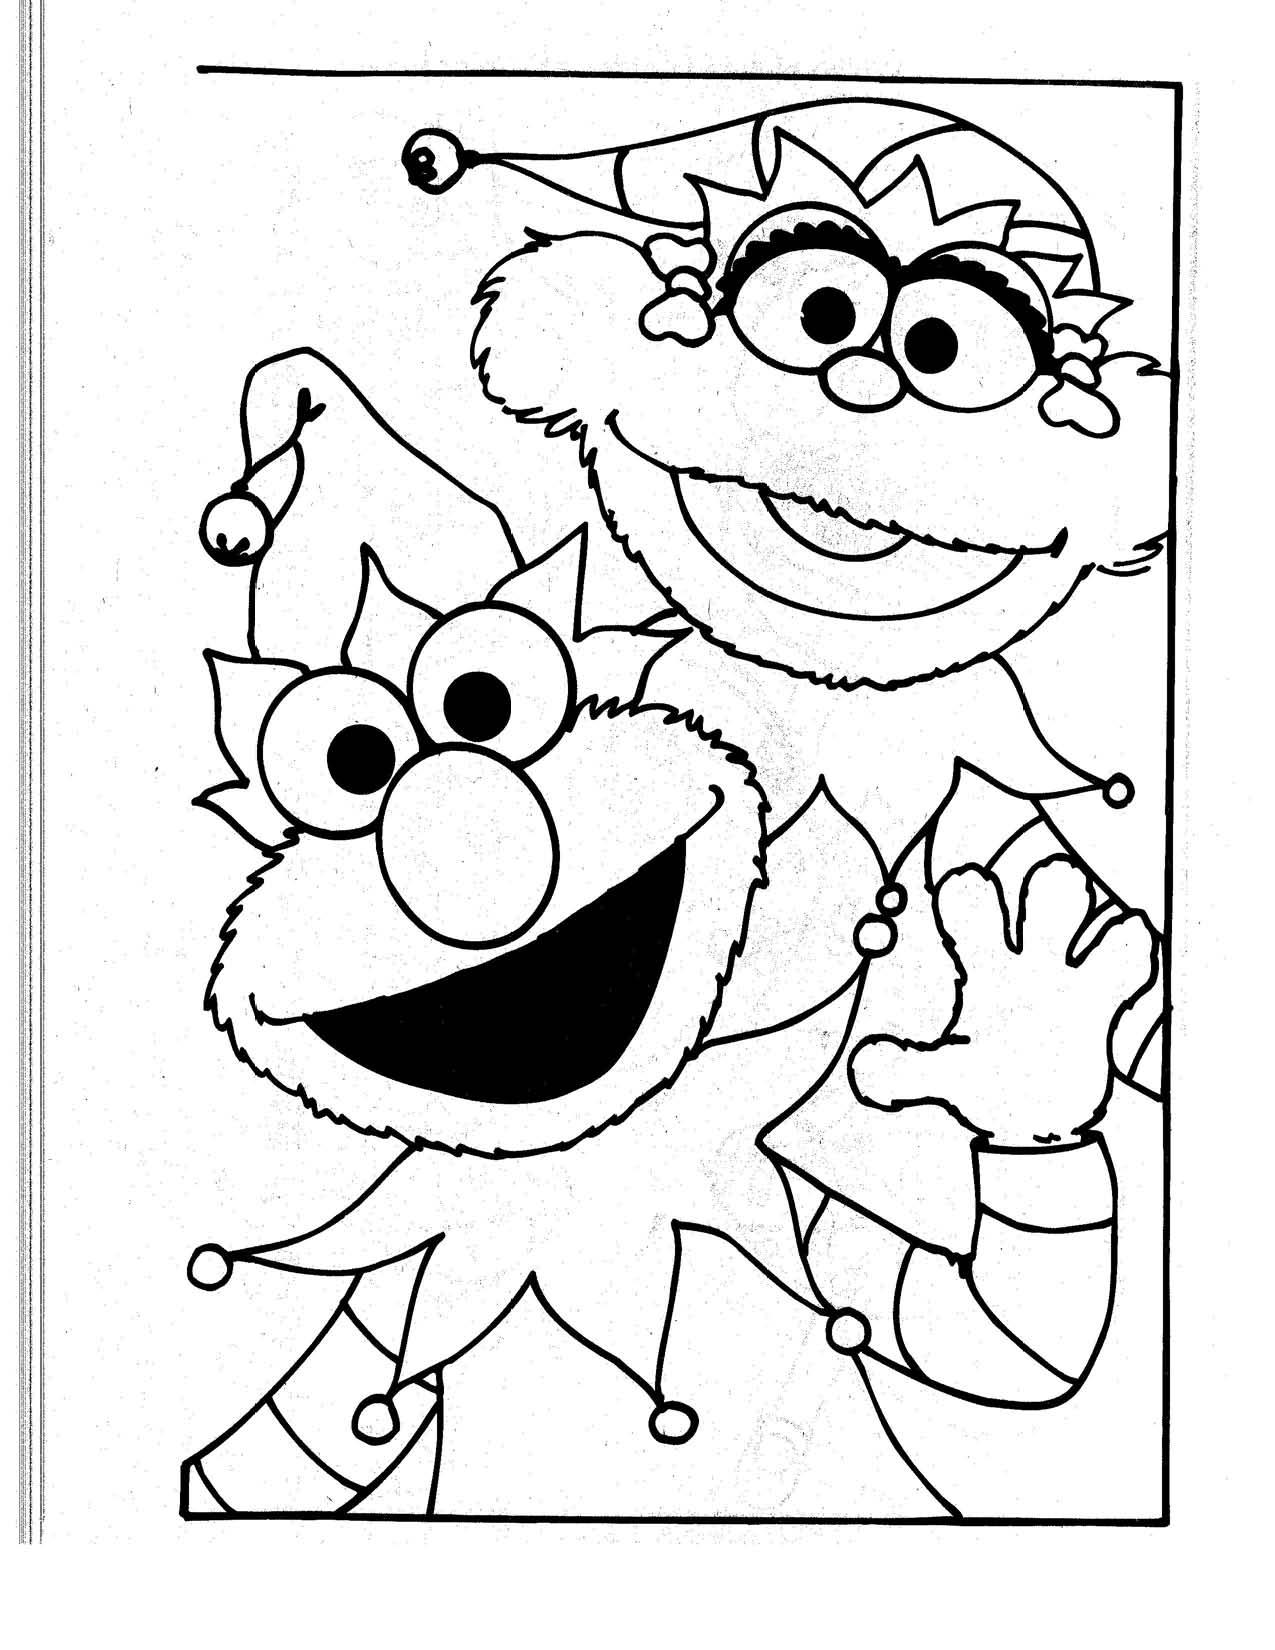 Elmo Coloring Pages Birthday. Elmo and Abby Coloring Pages Printable For Kids